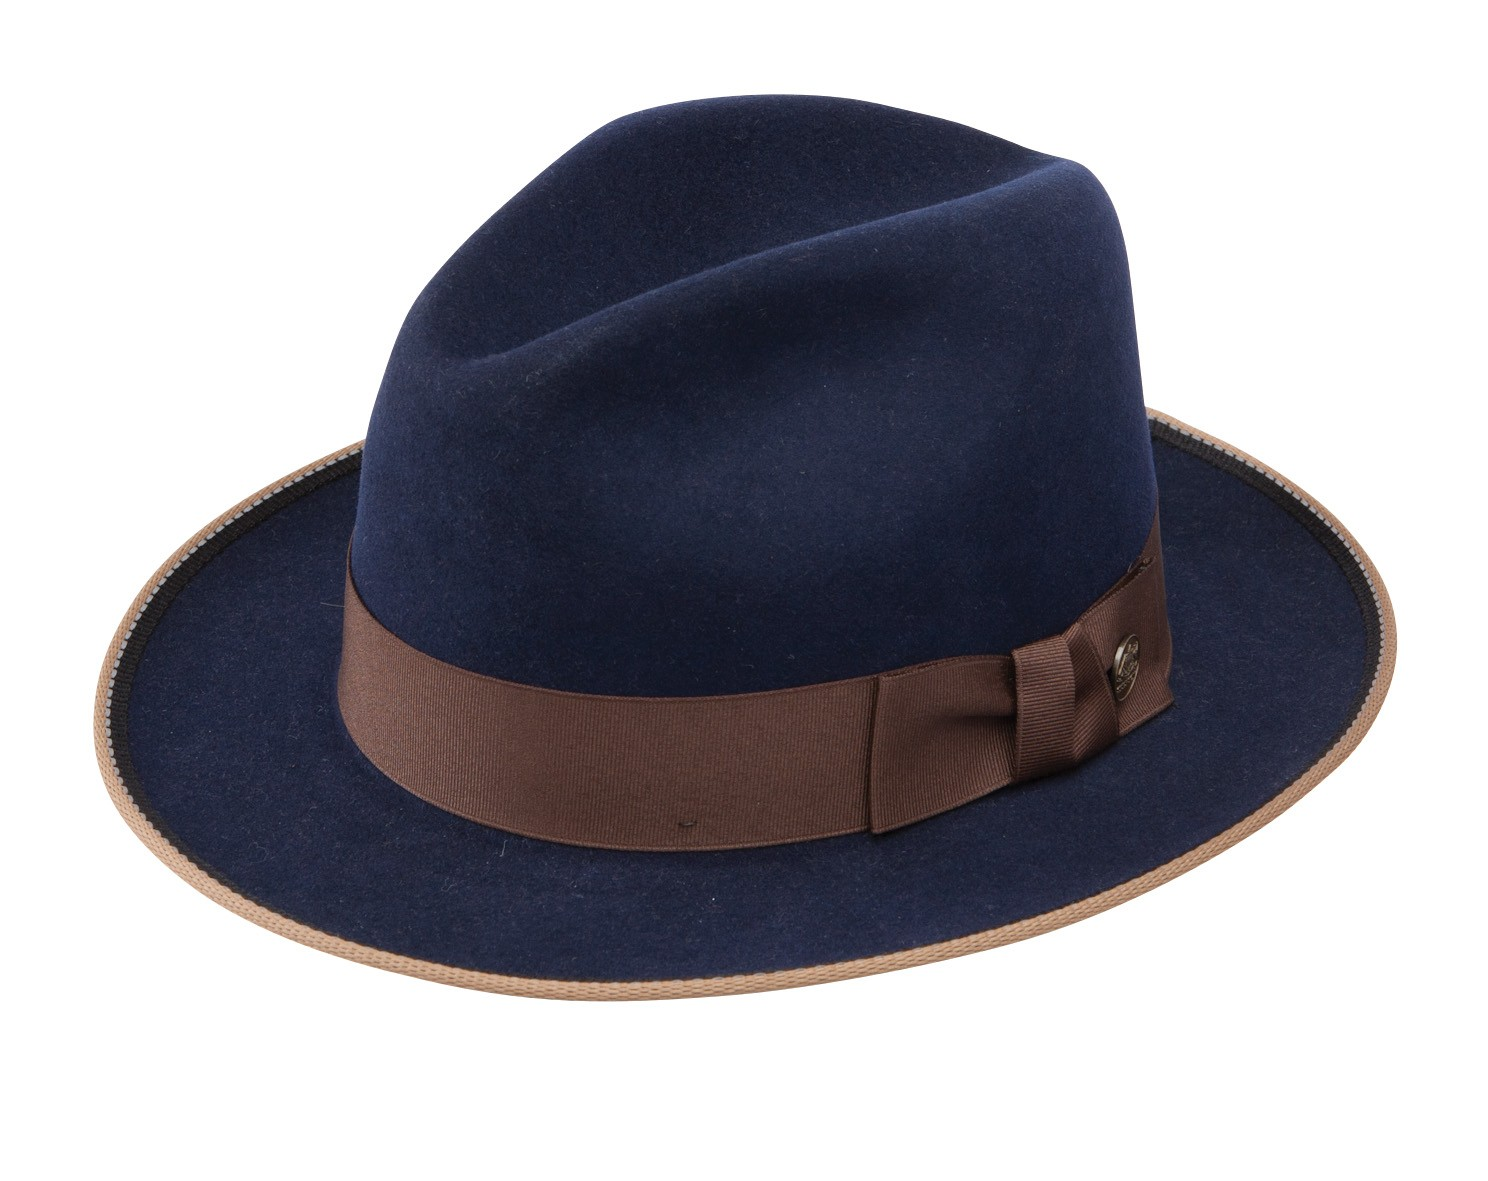 Shop top quality, high fashion fedora hats for men online at Hats in the Belfry. Exclusive styles from top brands like Belfry, Stetson, Biltmore, and many more. JavaScript seems to be disabled in your browser.